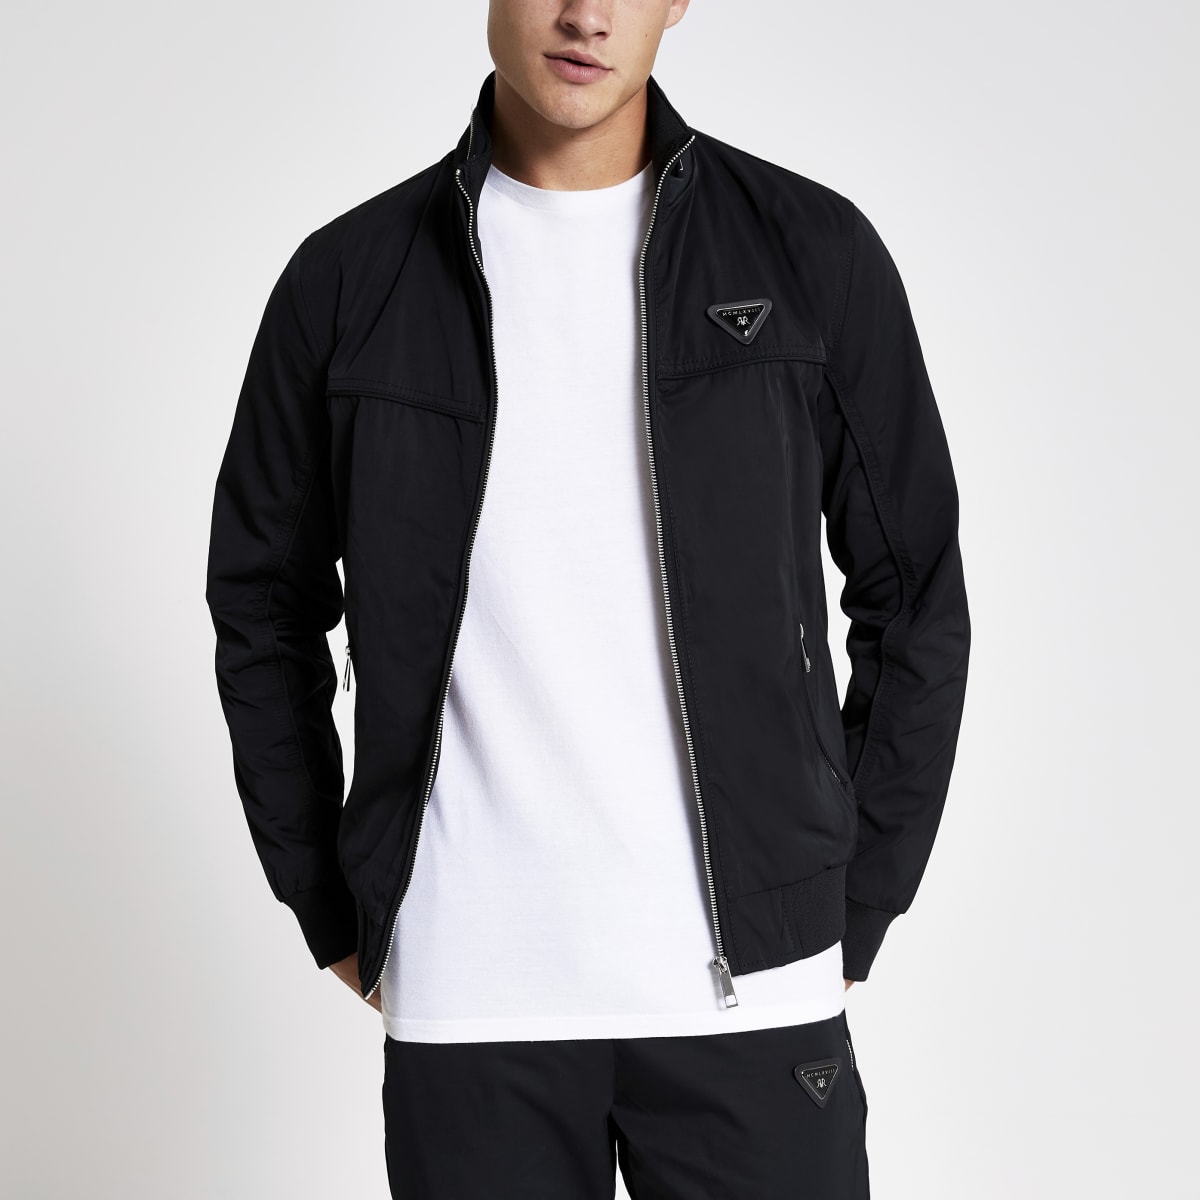 Black MCMLX zip front racer jacket